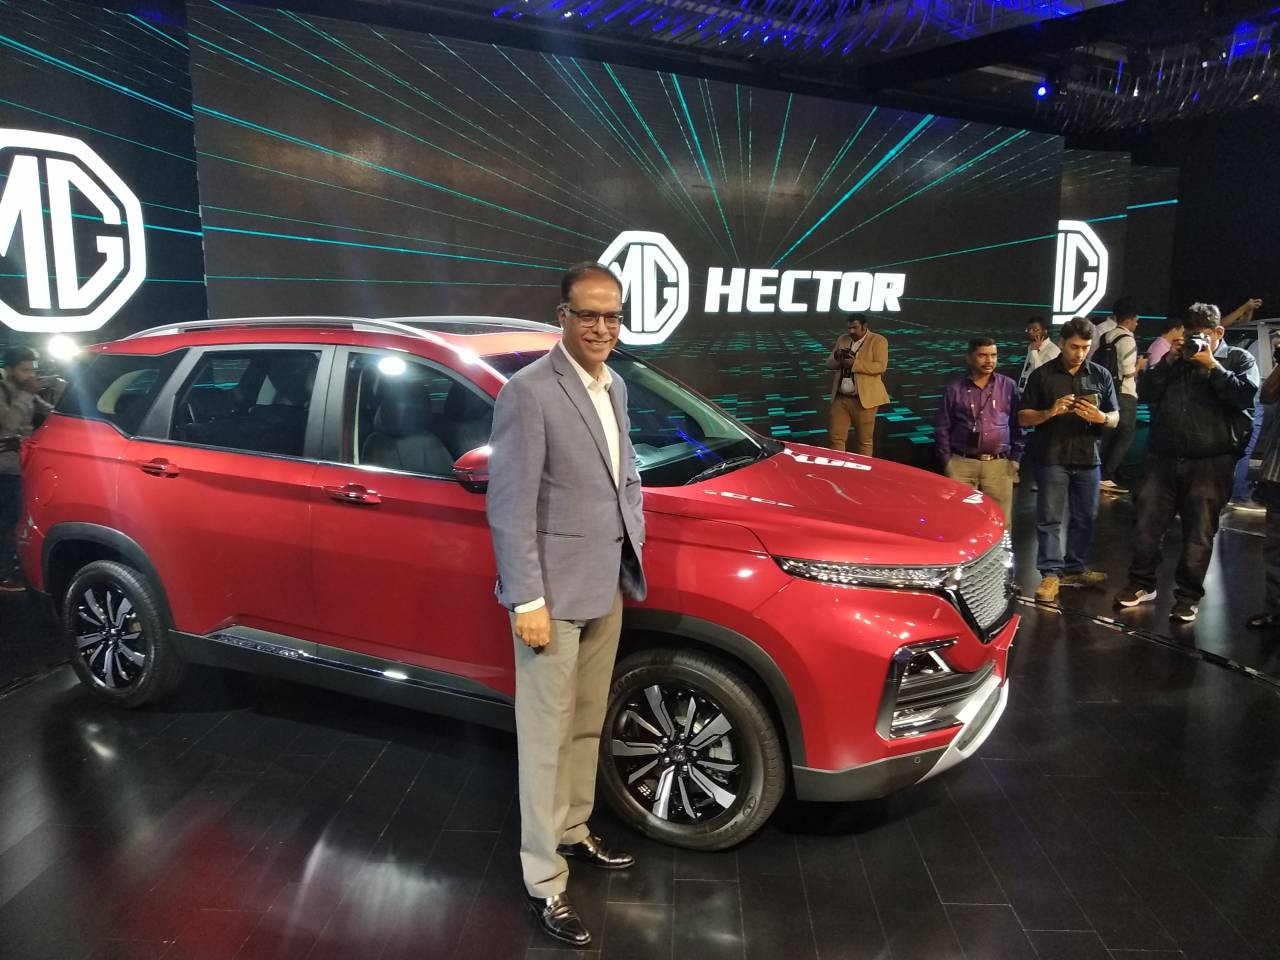 The Hector is developed on platform on which the Baojun 530 SUV was made. The Baojun 530 is a product of the General Motors-SAIC alliance in China. Pic courtesy: Moneycontrol